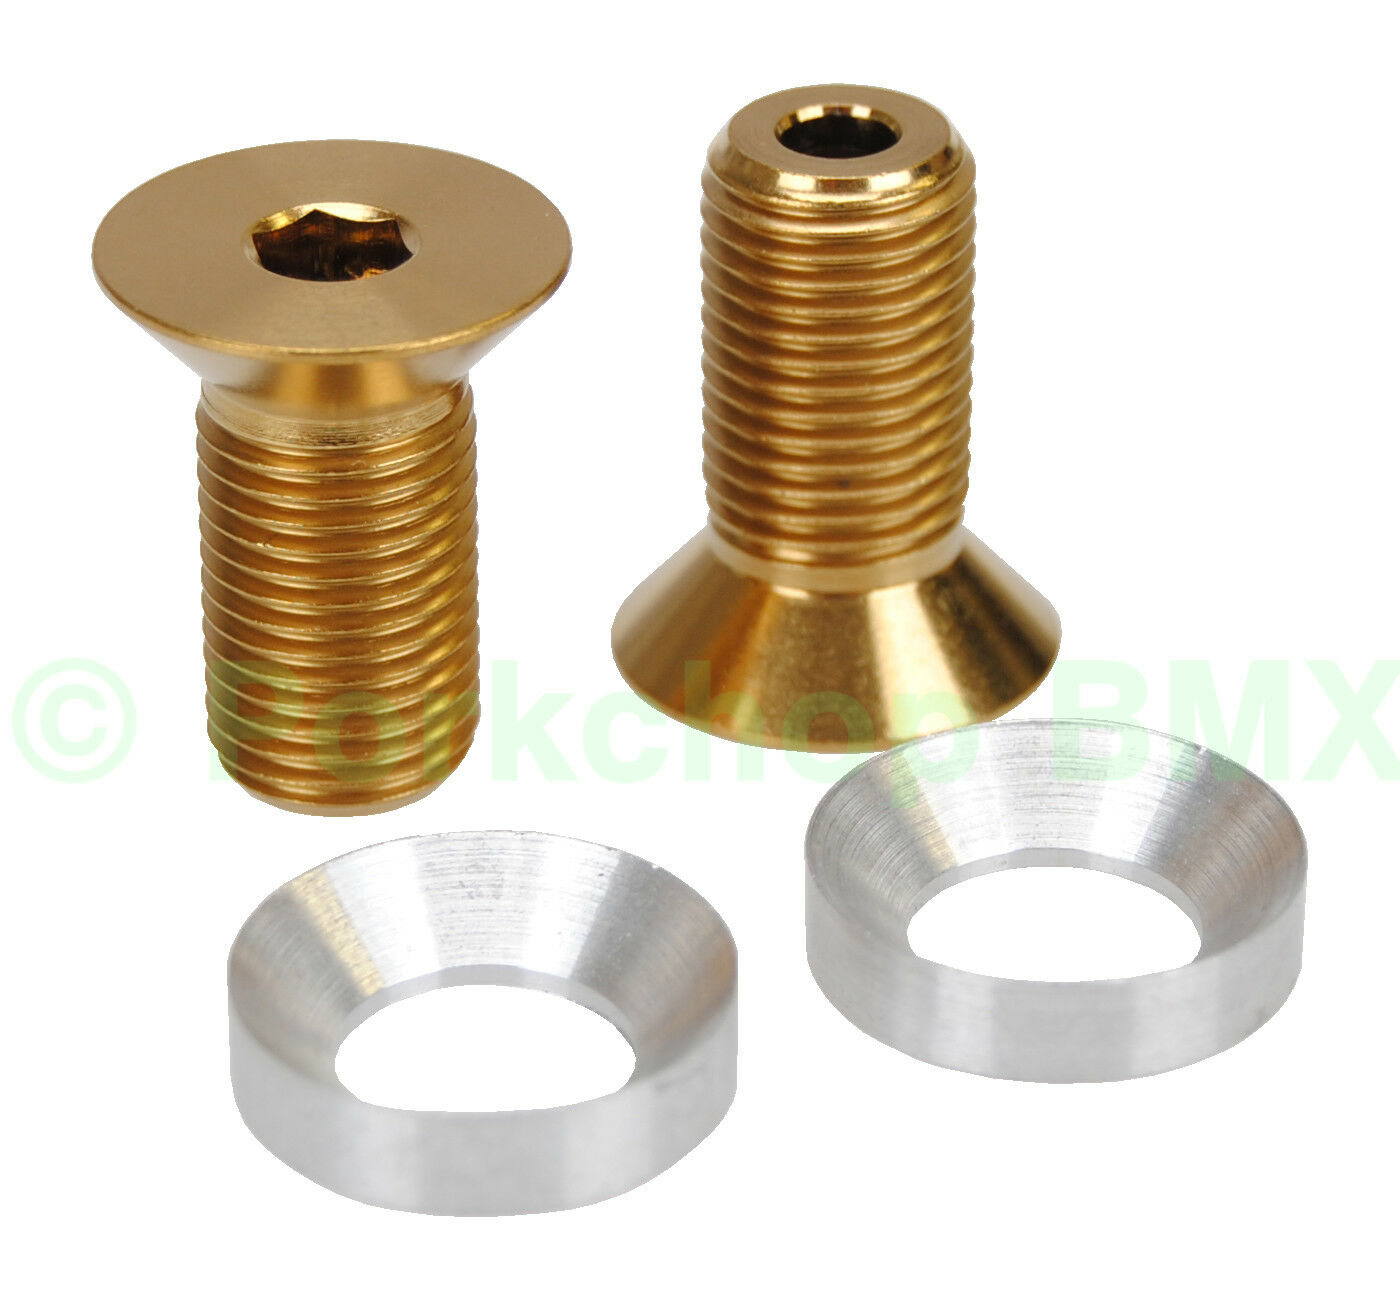 BMX crank HOLLOW bolts fits Profile 19mm GDH spindle PAIR TITANIUM gold